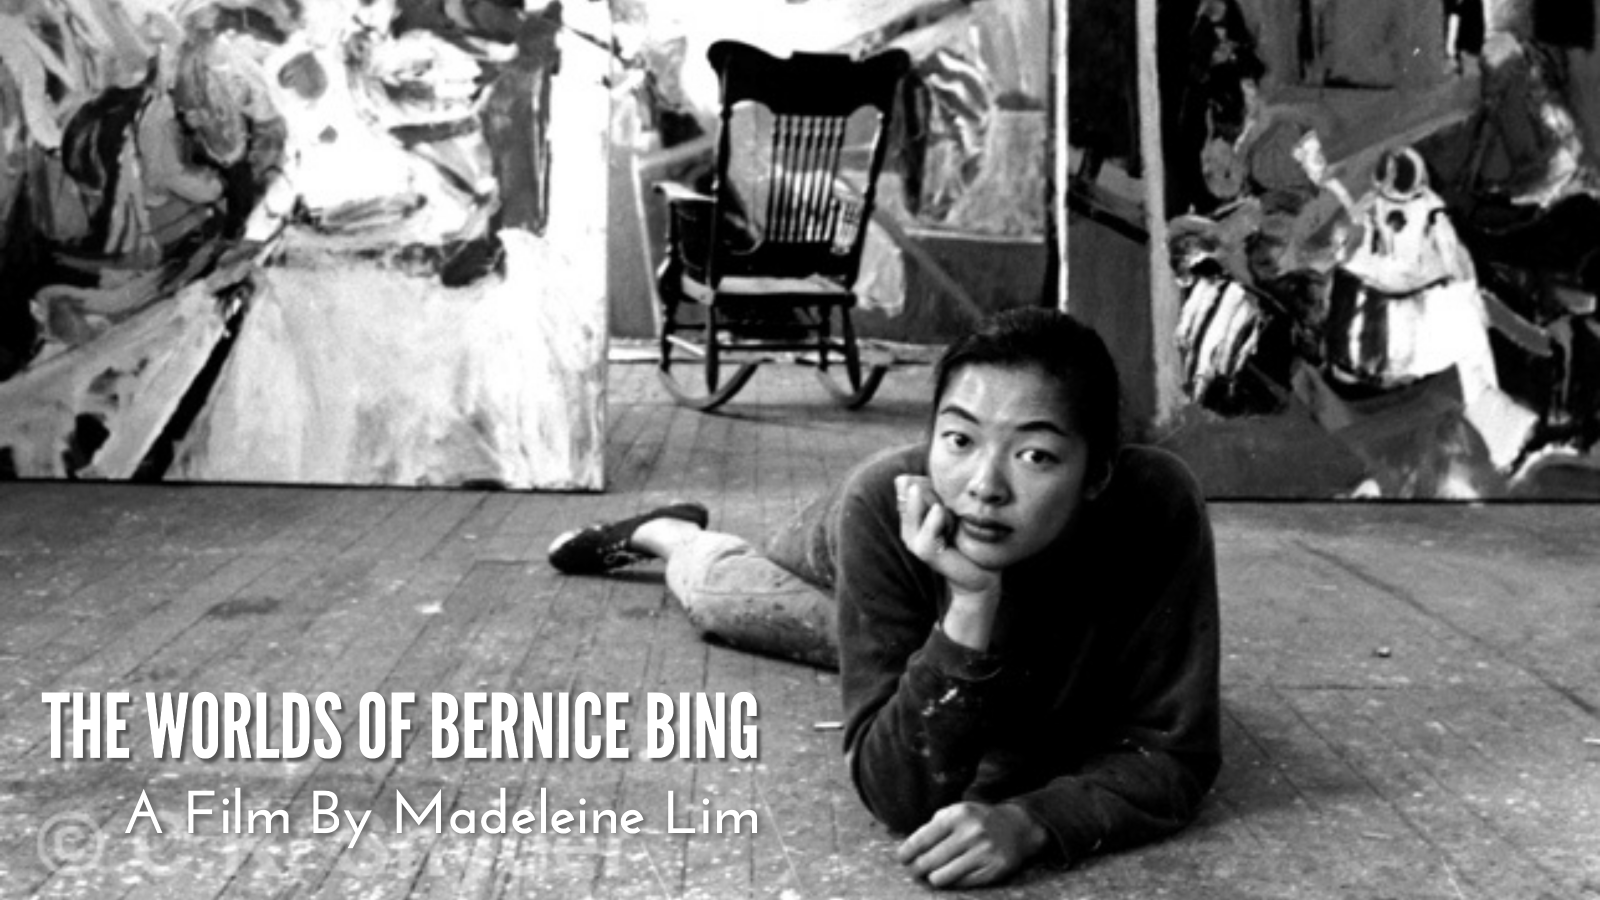 A black and white photo of Bernice Bing, an Asian American woman with black hair, as she lounges on her stomach on the wood-paneled floor and looks into the camera. Behind her, a large rocking chair sits empty between large abstract paintings that lean against the wall.